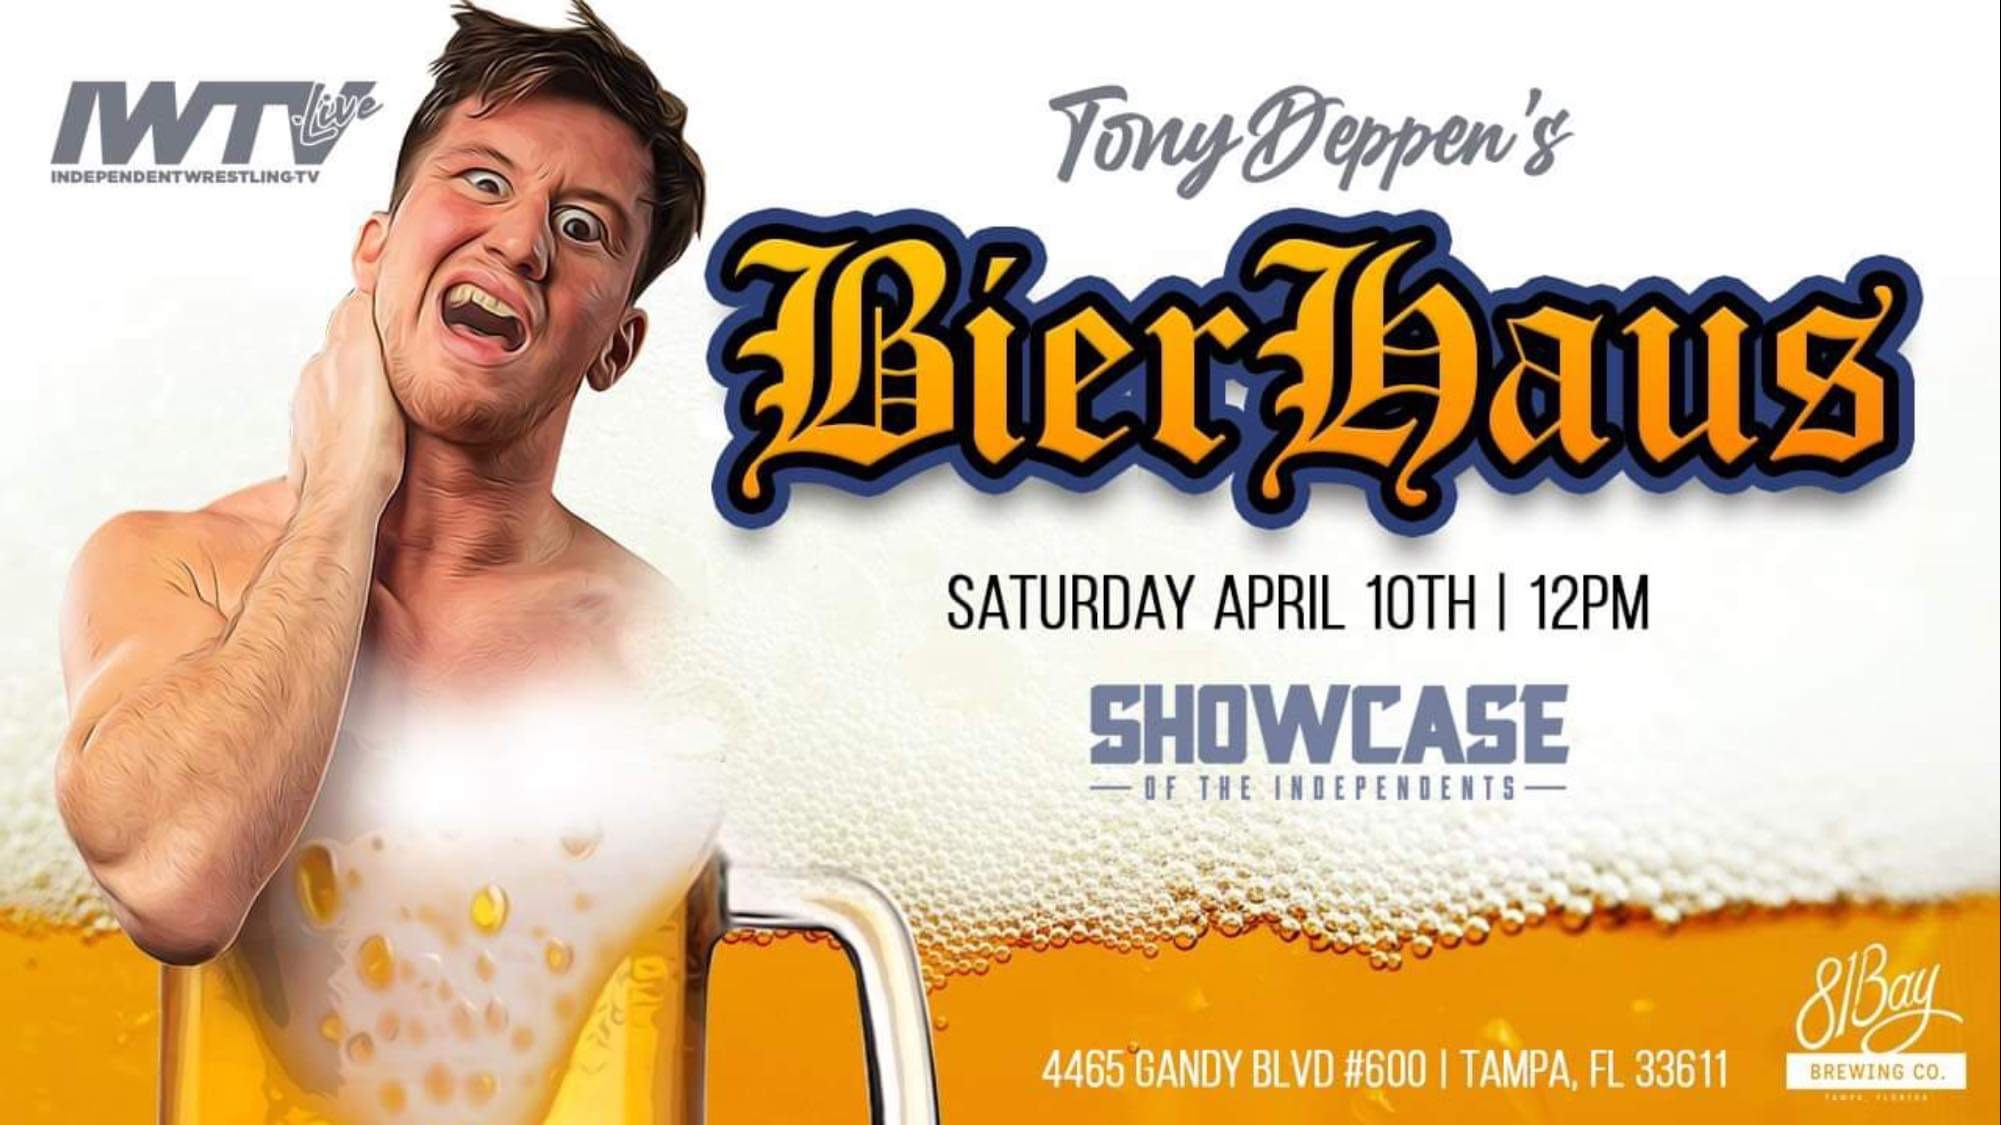 Tony Deppen Addresses Controversy That Led To His BierHaus Show